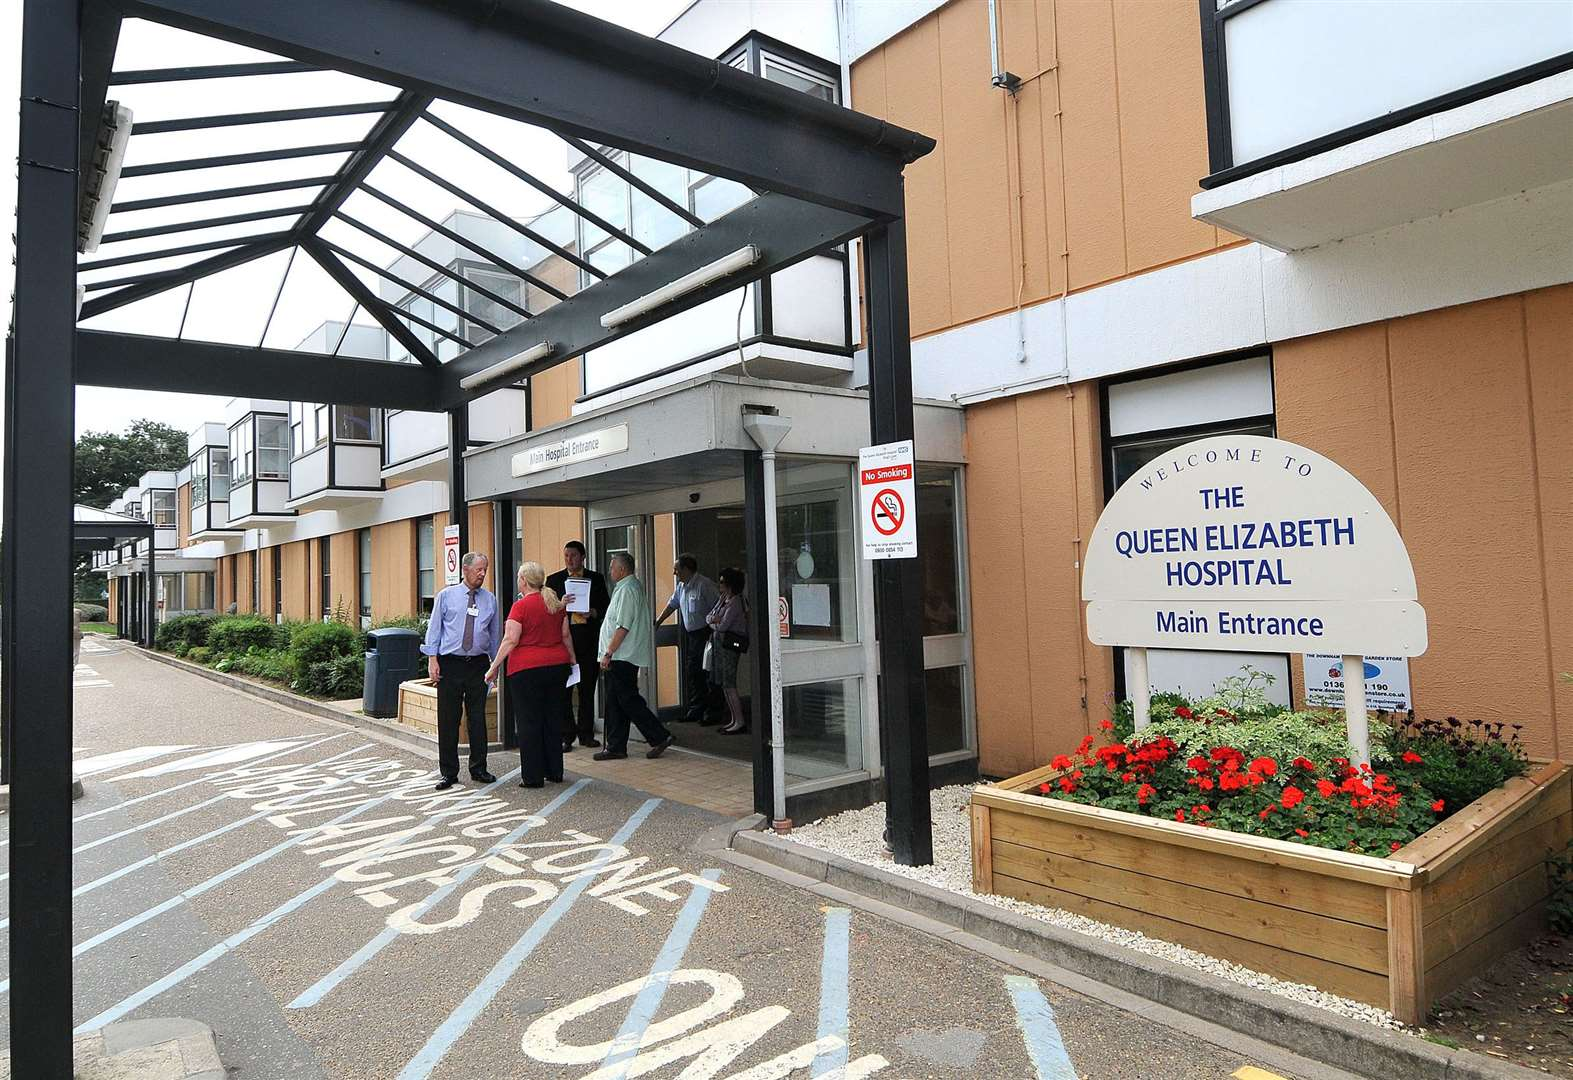 Bed blocking at Queen Elizabeth Hospital falls with partners' work